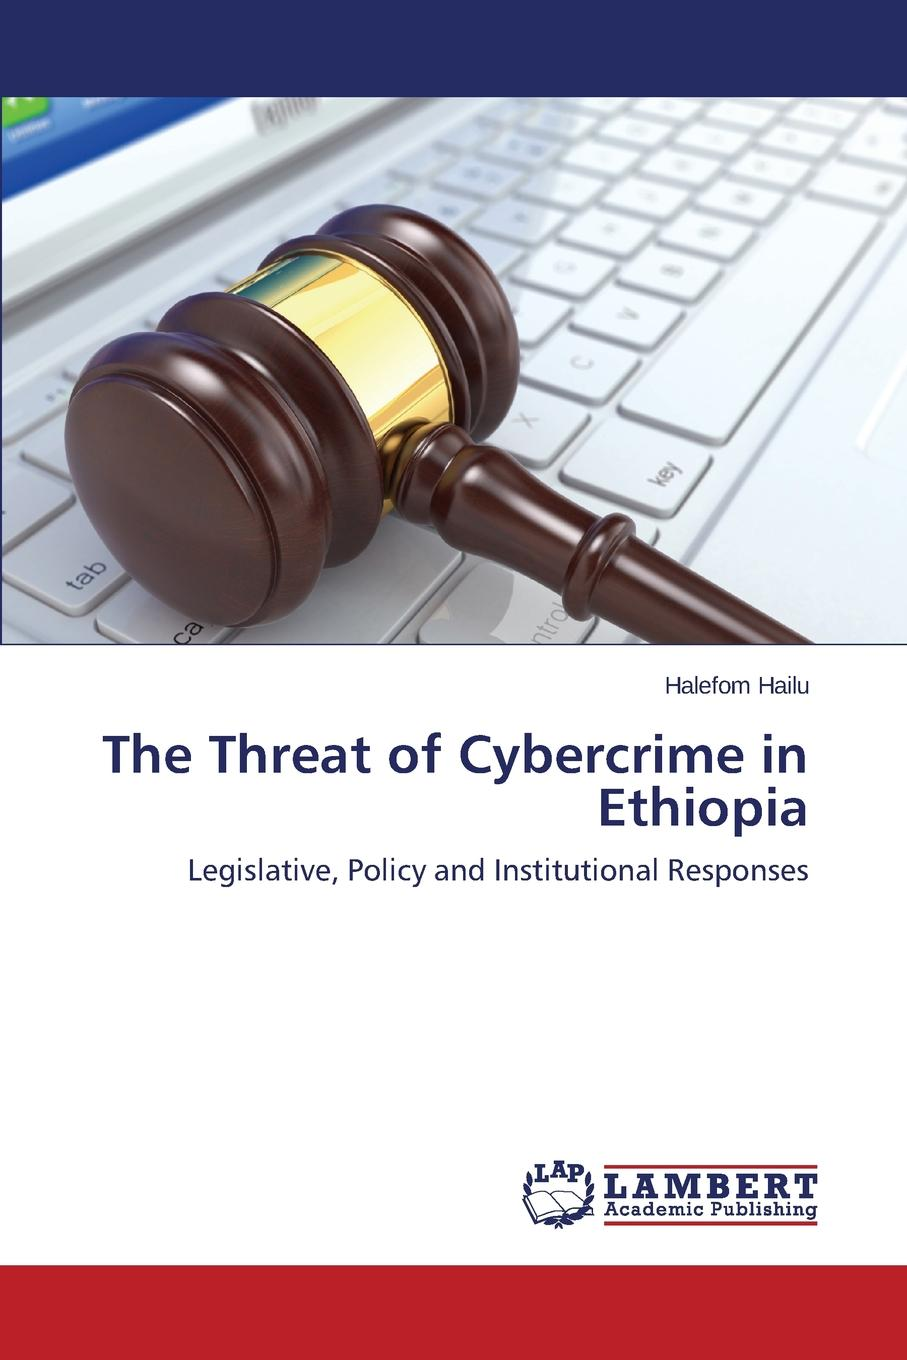 Hailu Halefom The Threat of Cybercrime in Ethiopia sandra herting globalization a threat to cultural diversity in southern ethiopia